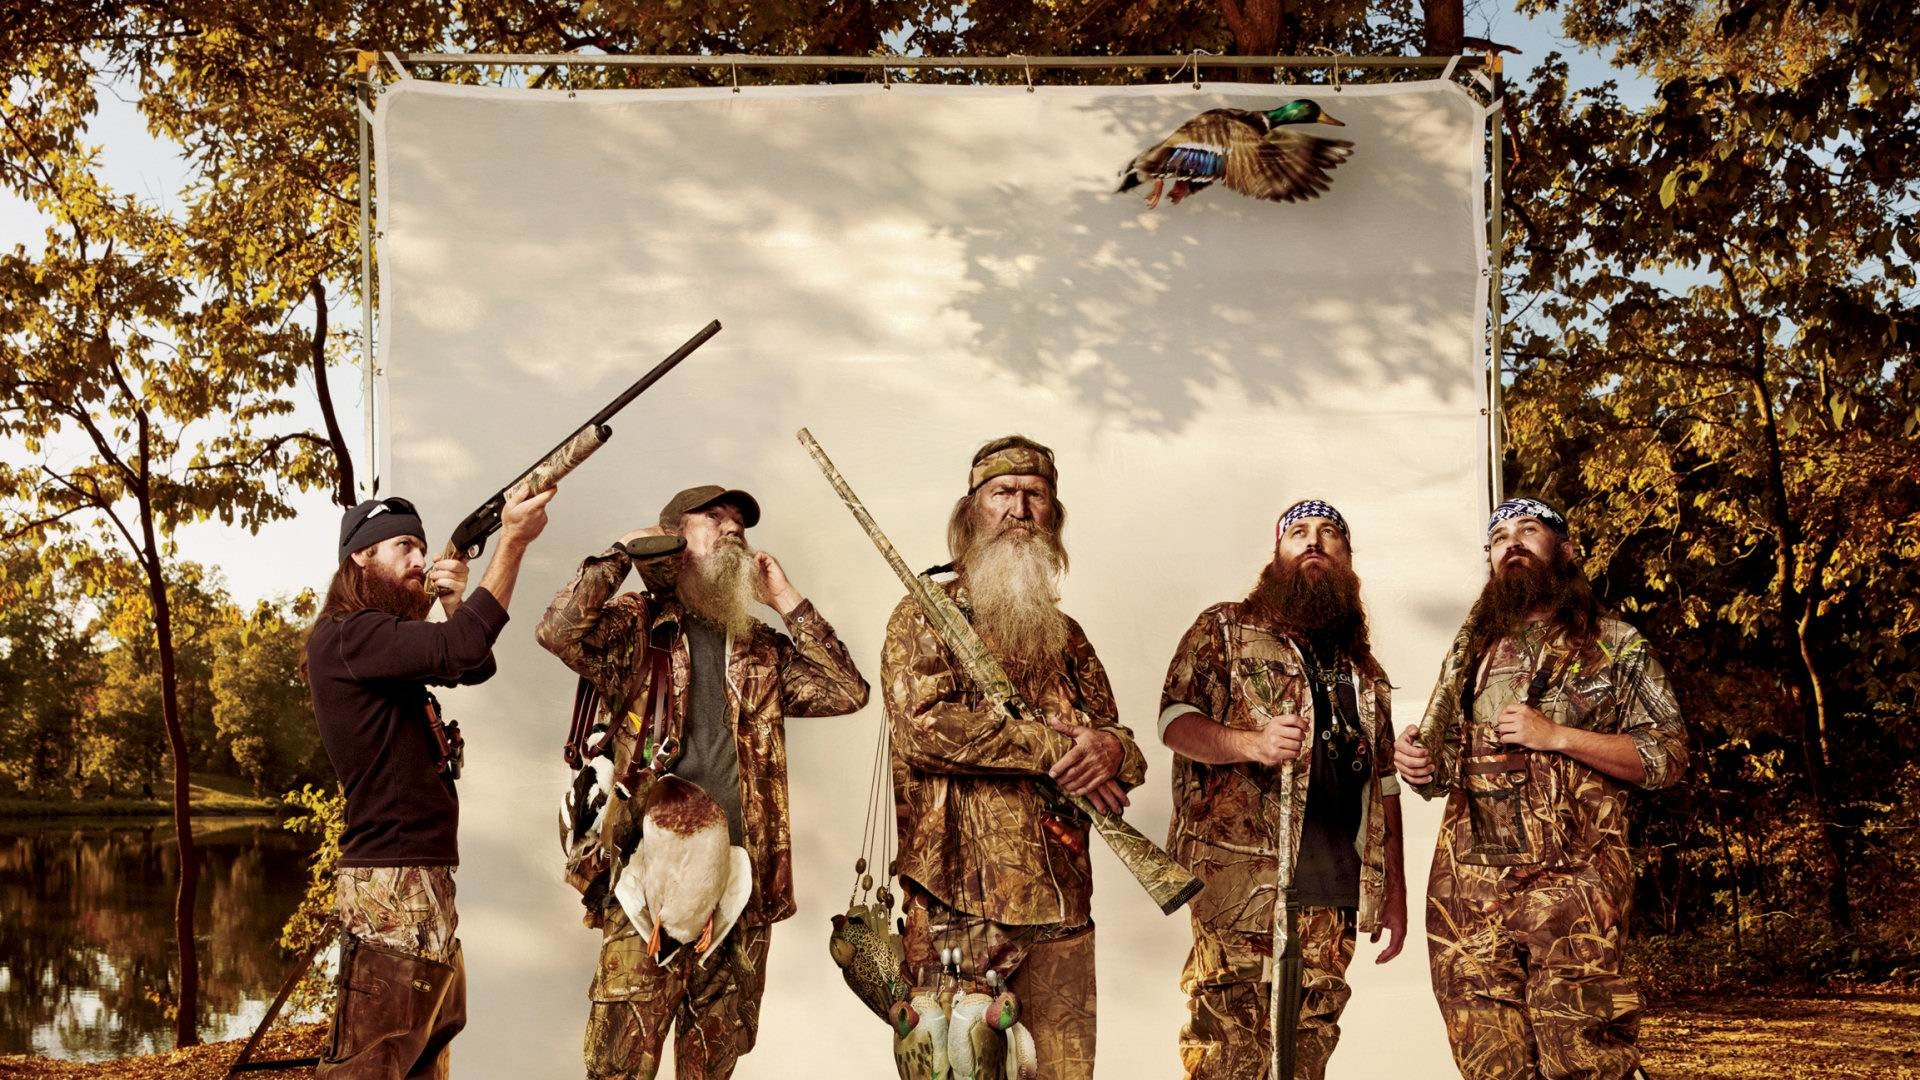 Res: 1920x1080, Duck Dynasty Wallpapers 6 - 1920 X 1080